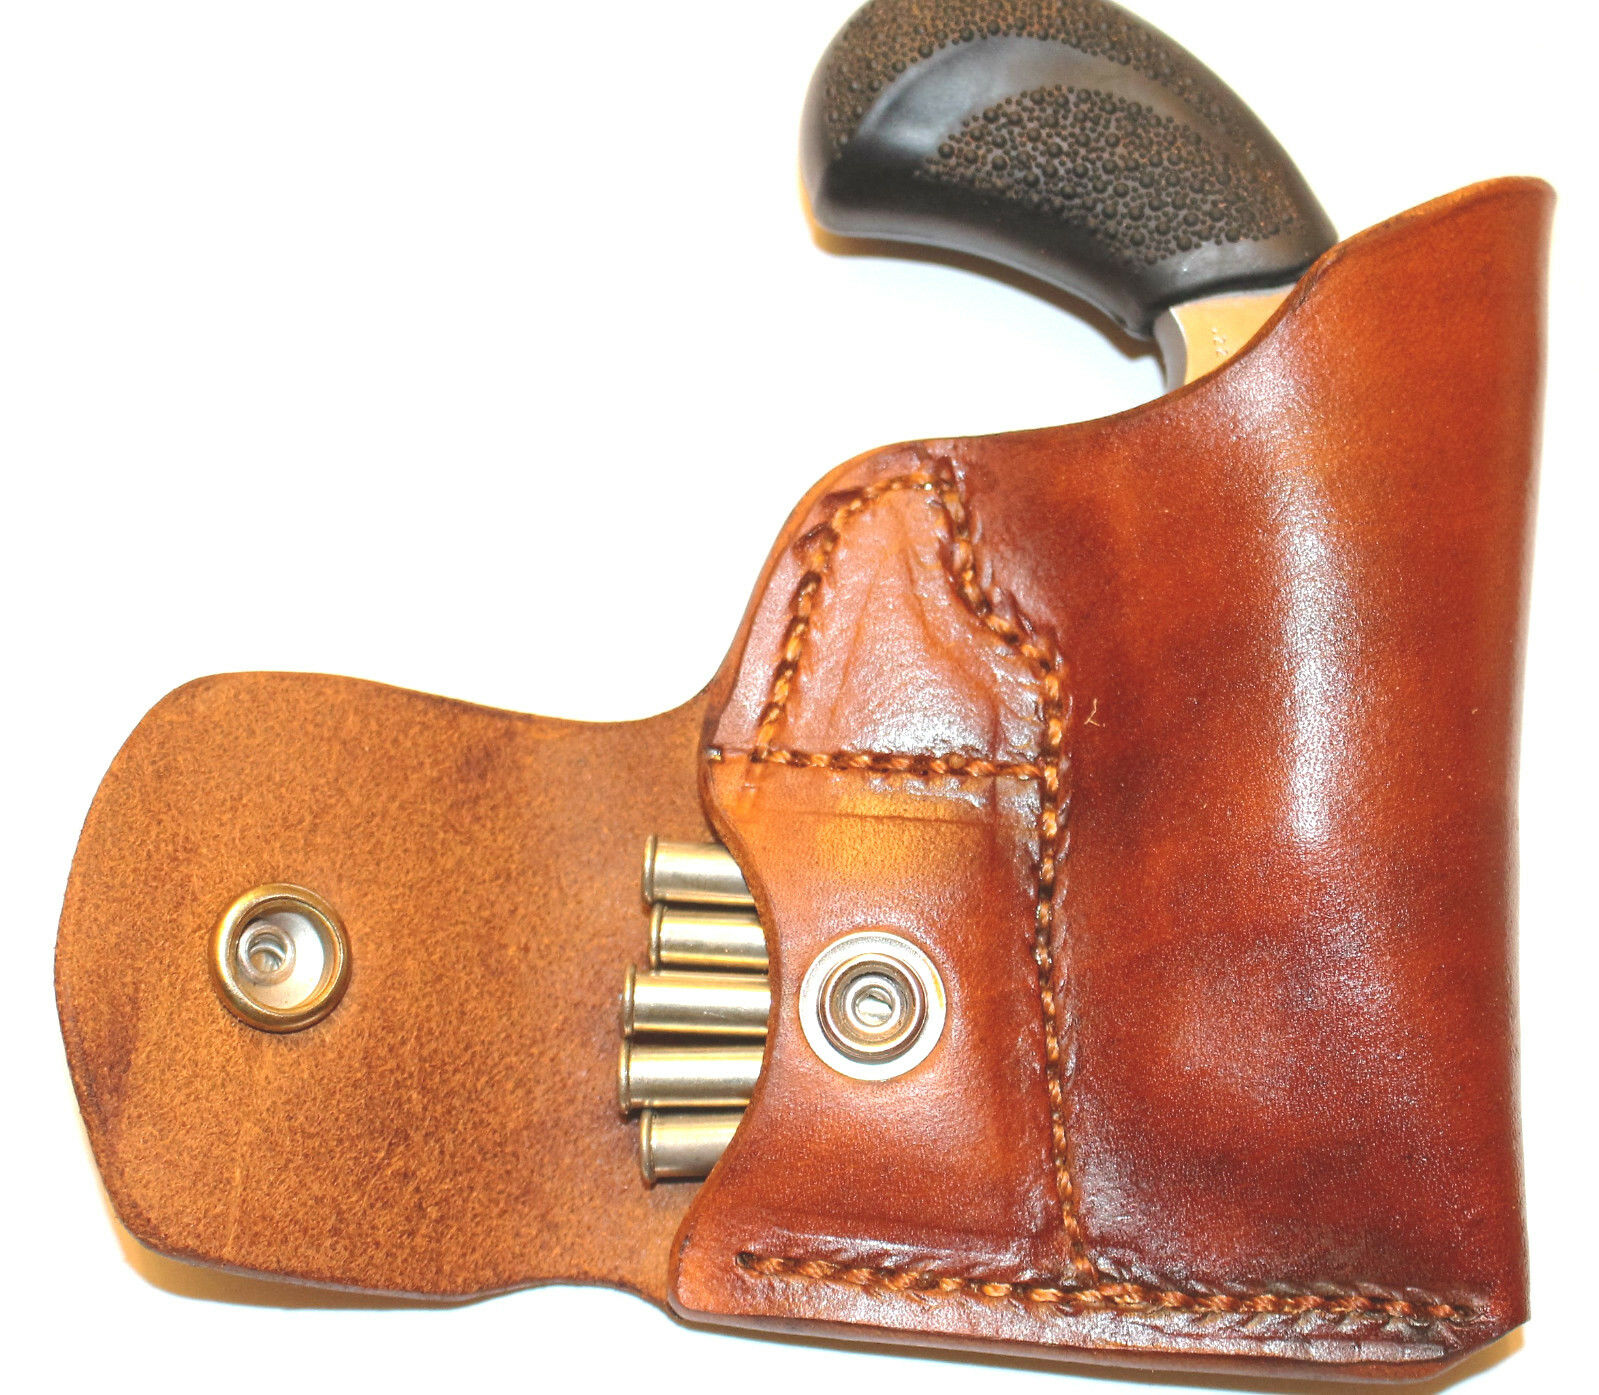 POCKET HOLSTER WITH ammo pouch for NAA PUG - Leather tan - $35.99 ...